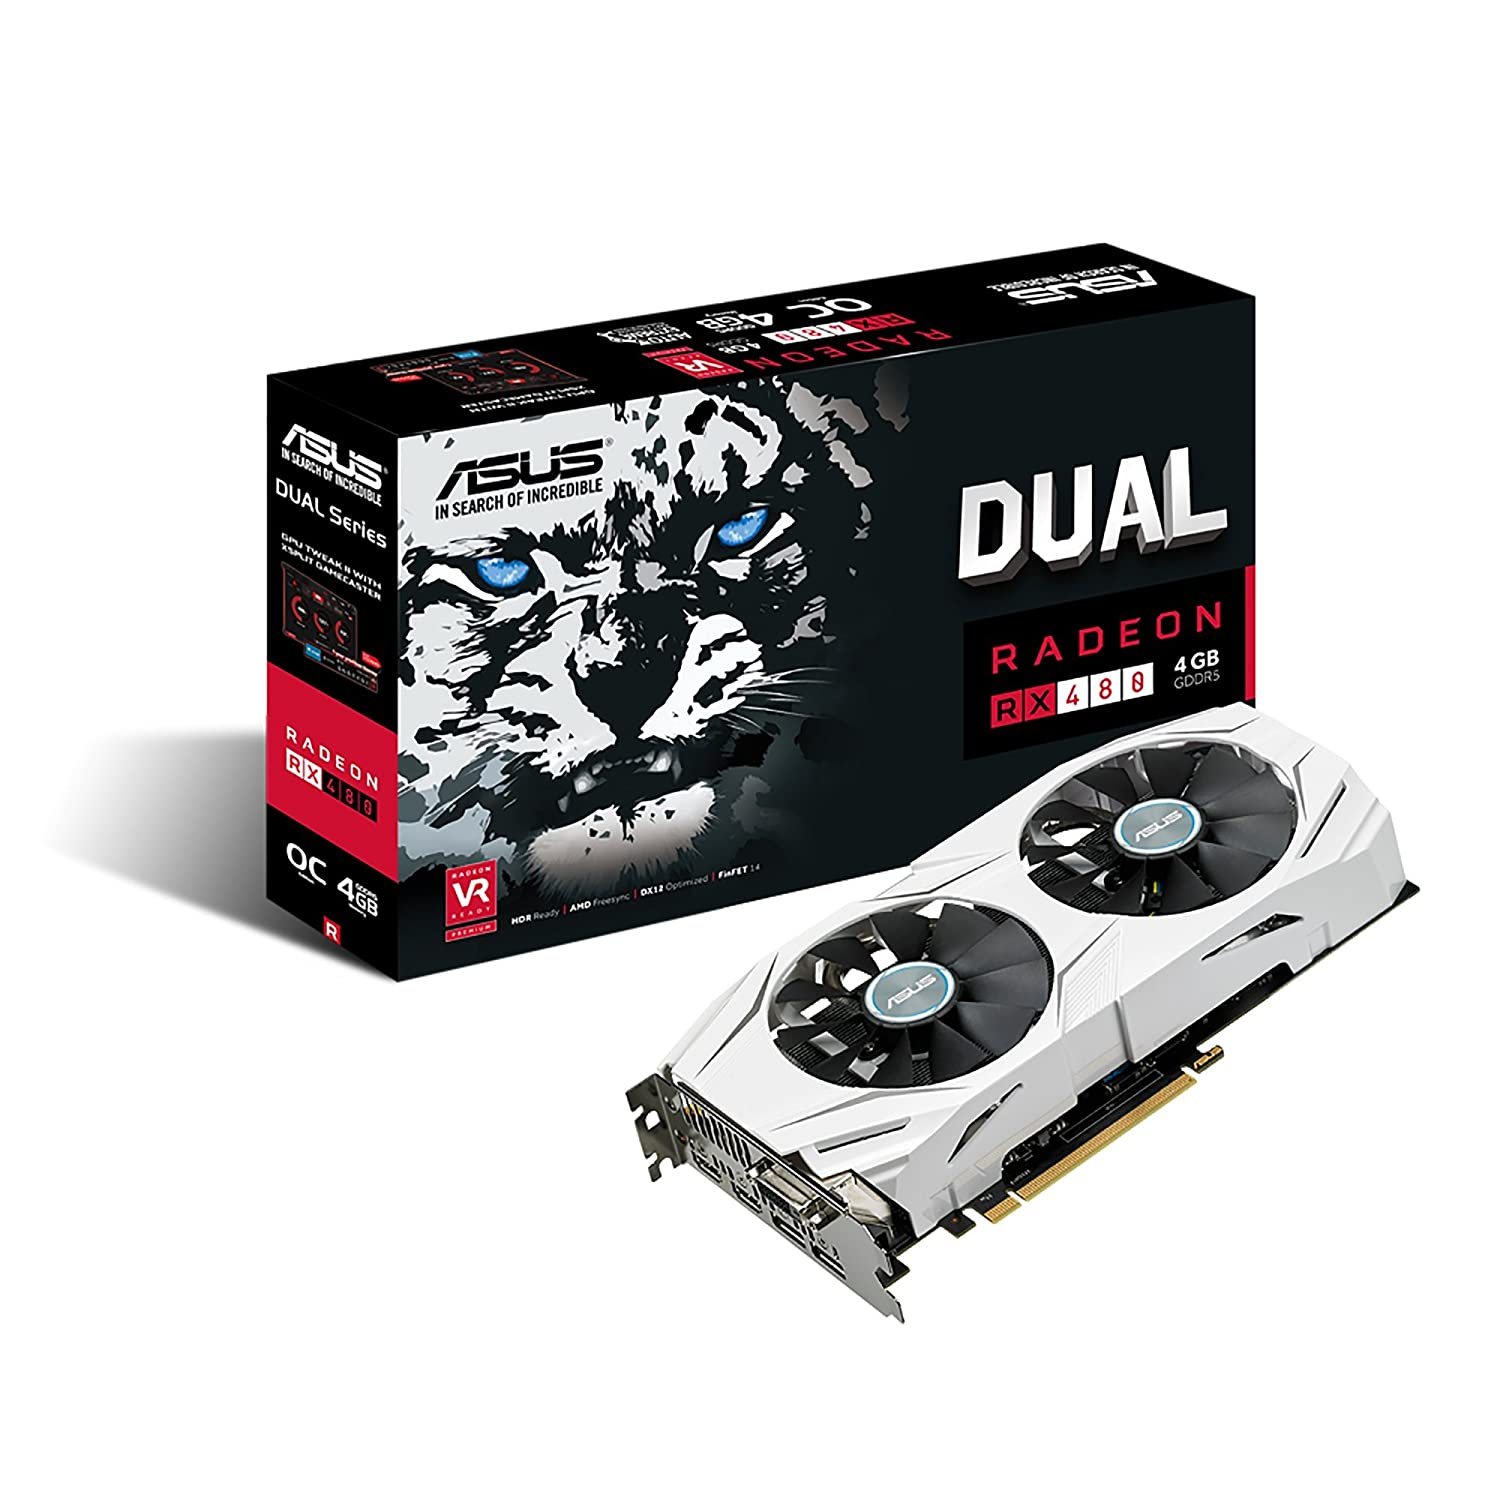 ASUS Dual-Fan Radeon Rx 480 4GB OC Edition AMD Gaming Graphics Card with DP  1 4 HDMI 2 0 (DUAL-RX480-O4G)